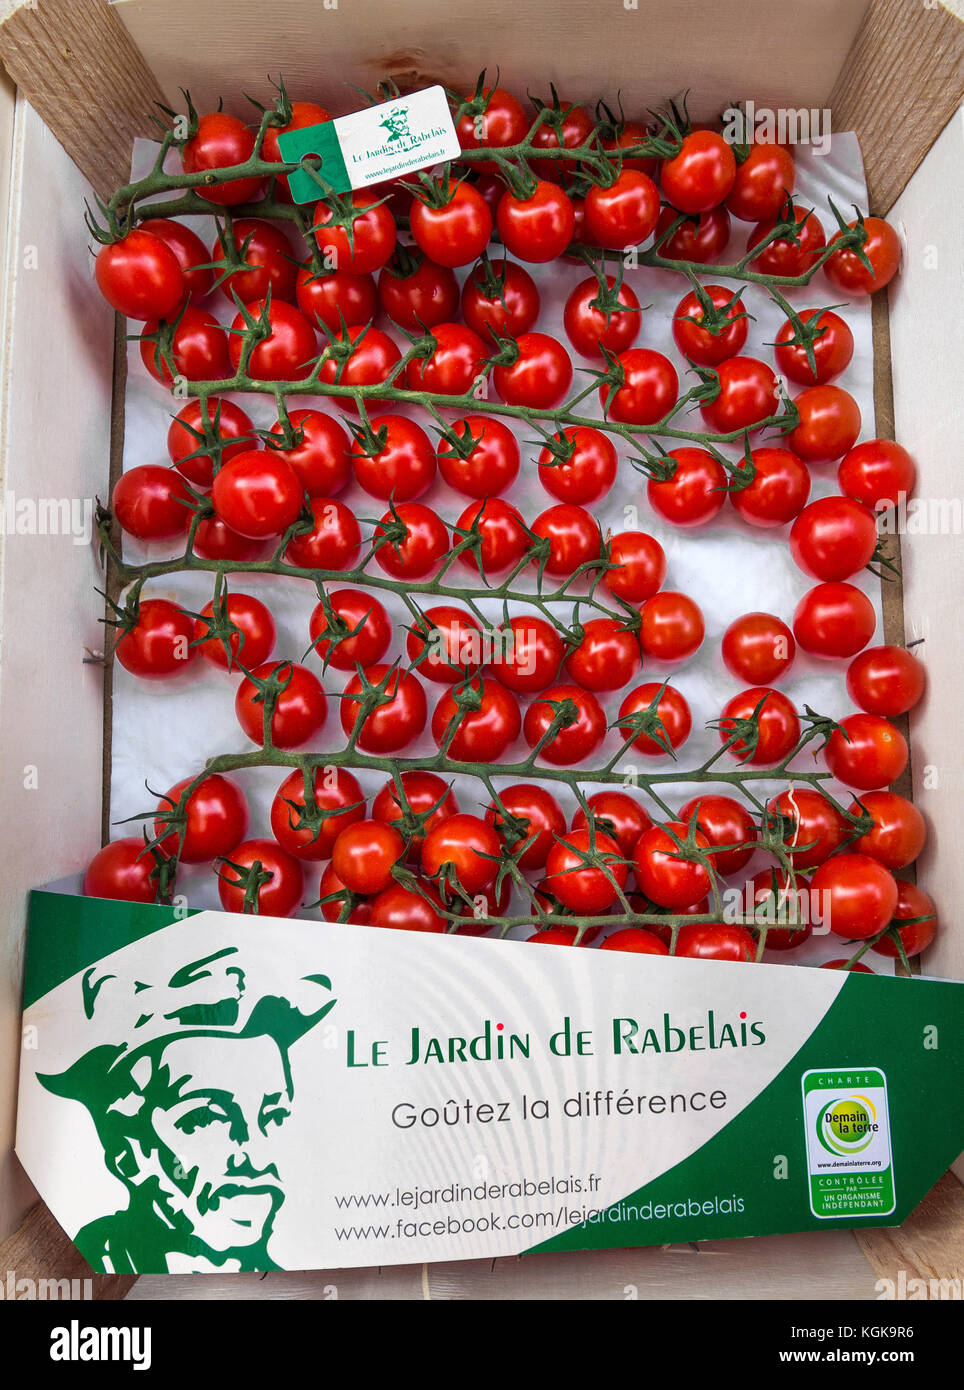 Box of cherry tomatoes on French market stall. - Stock Image